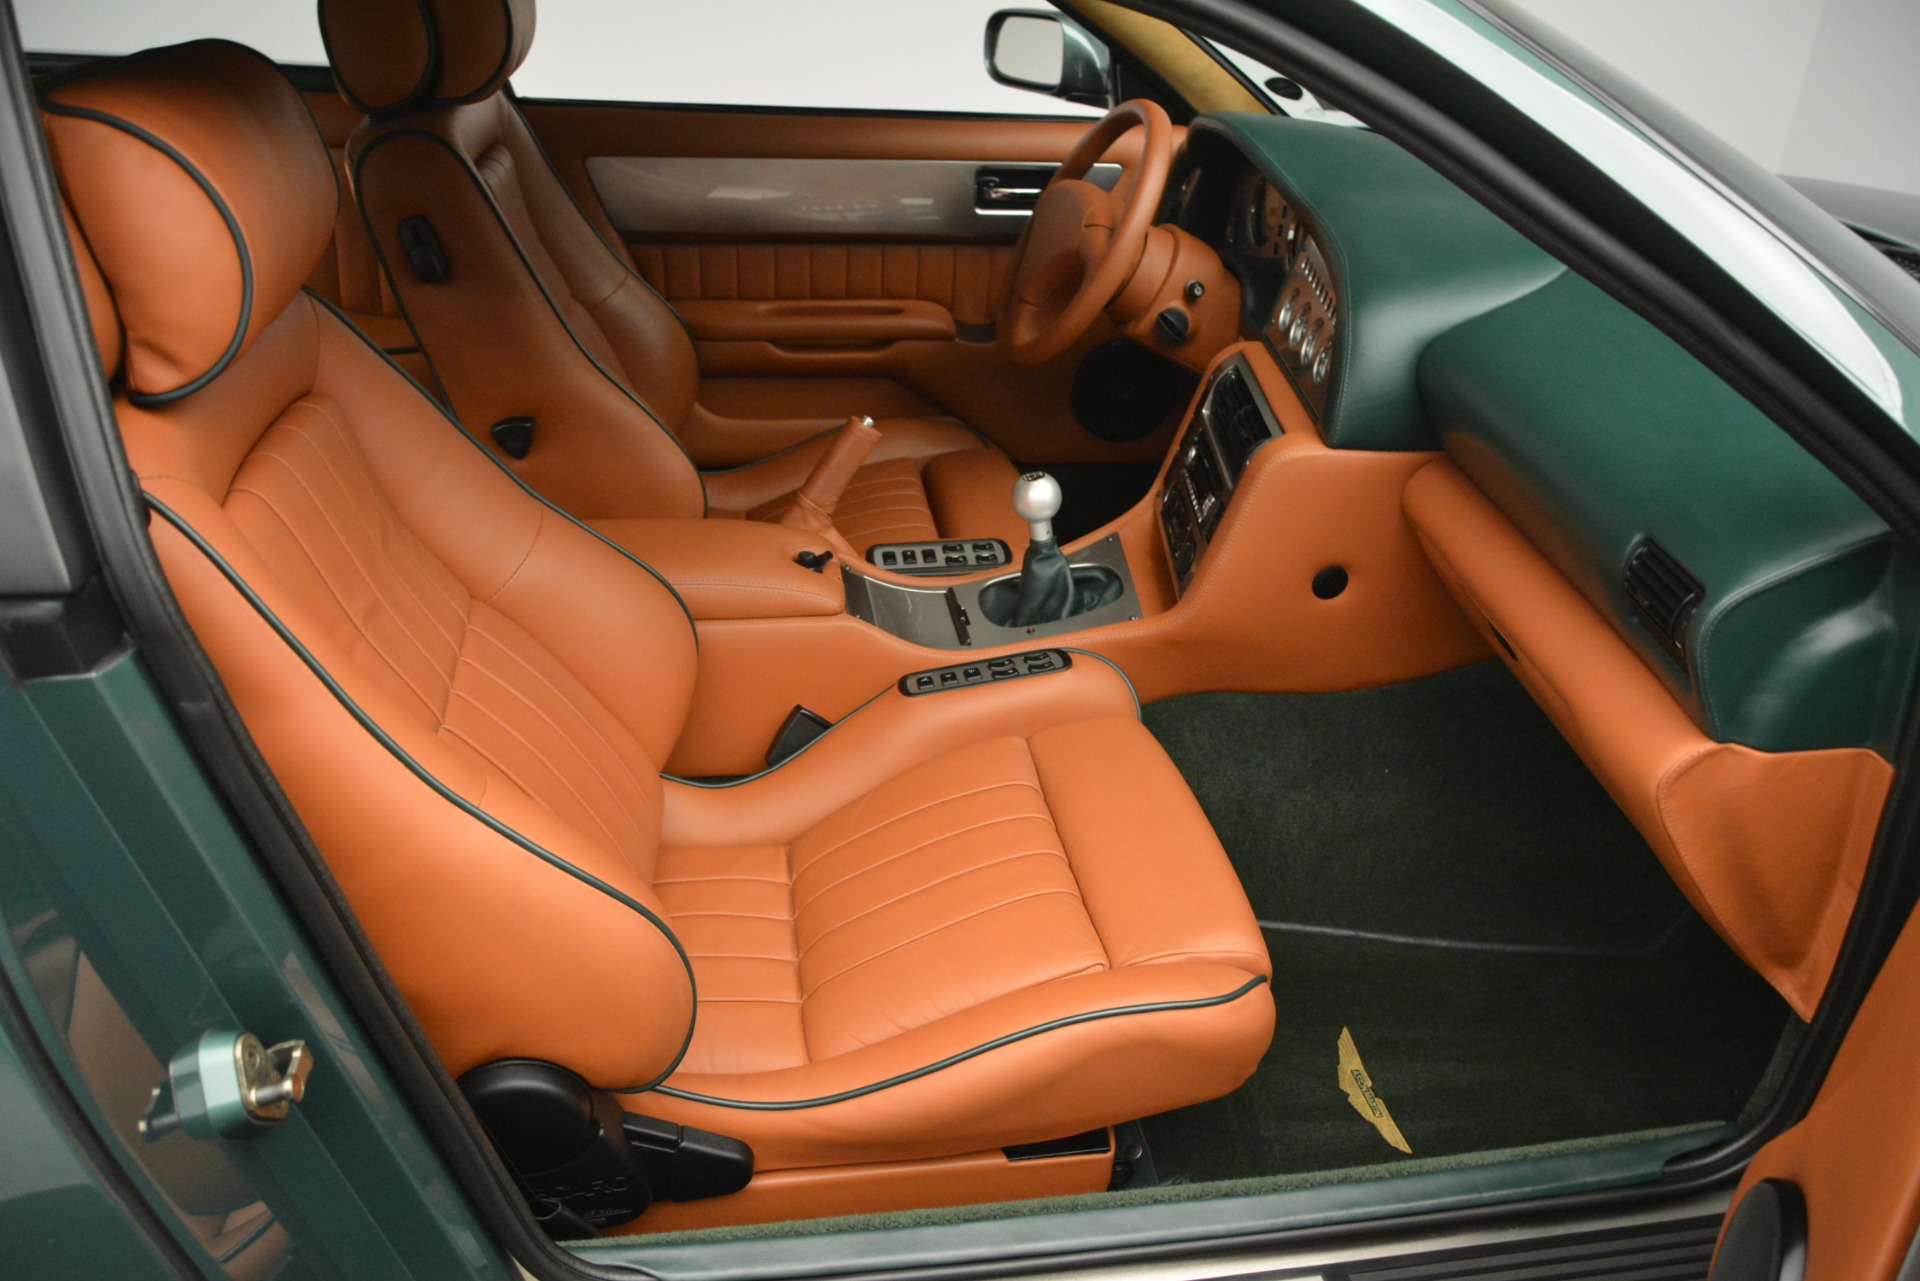 Used 1999 Aston Martin V8 Vantage Le Mans V600 Coupe For Sale In Greenwich, CT 2789_p26